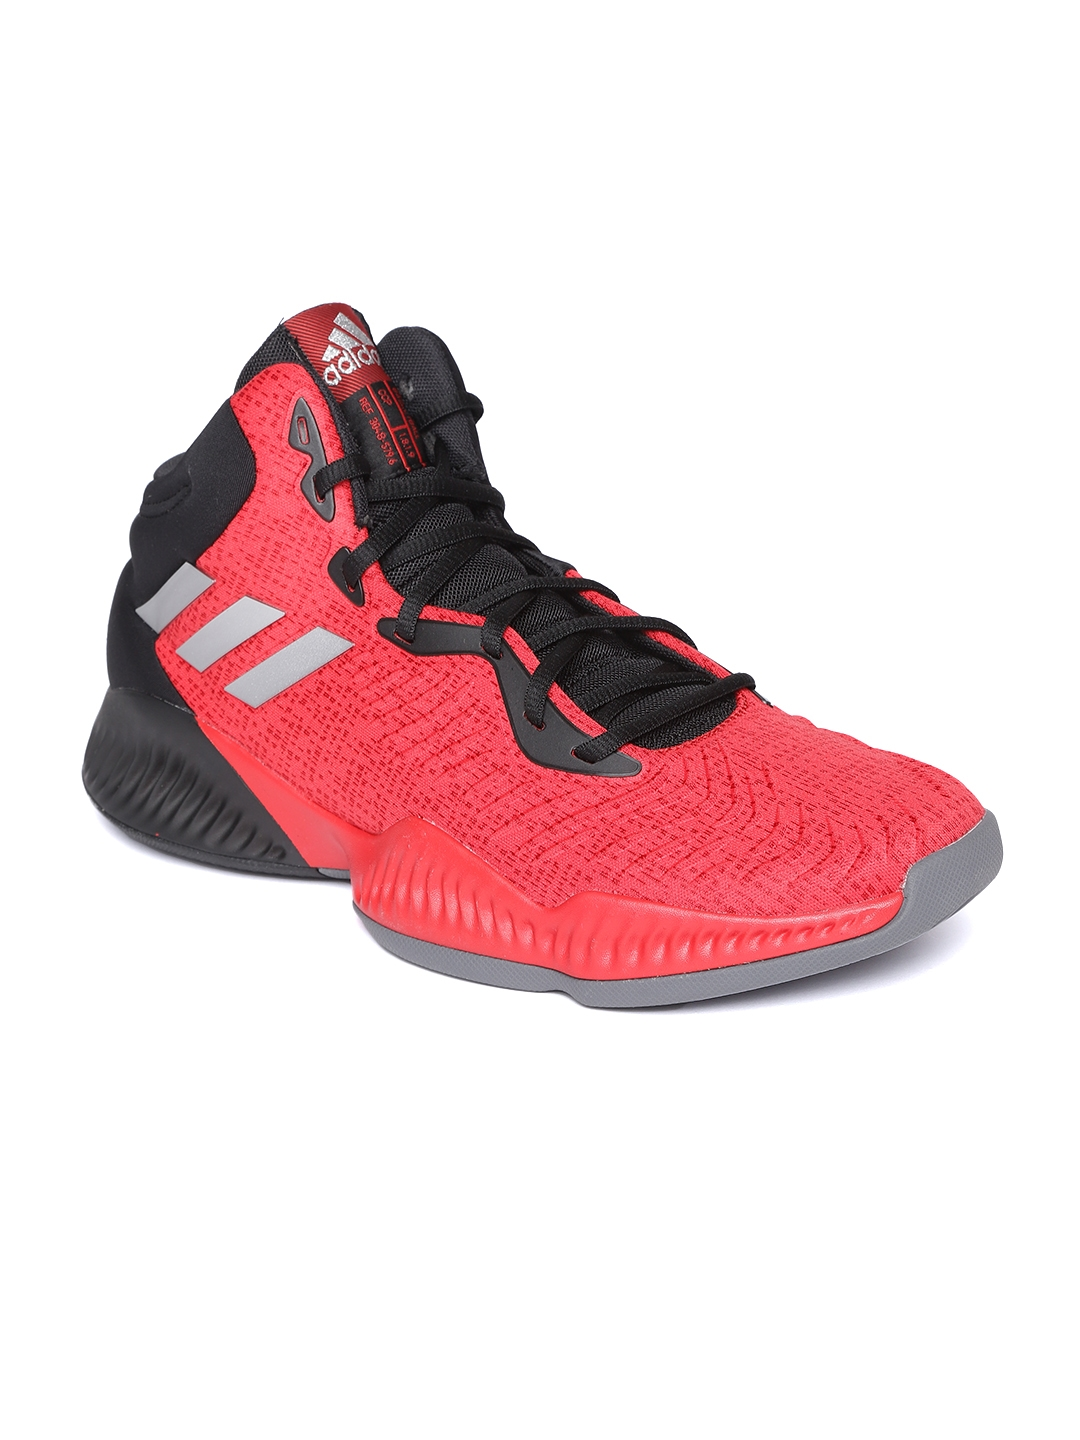 official photos d79f0 9a92e ADIDAS Men Red   Black Mad Bounce 2018 Mid-Top Basketball Shoes